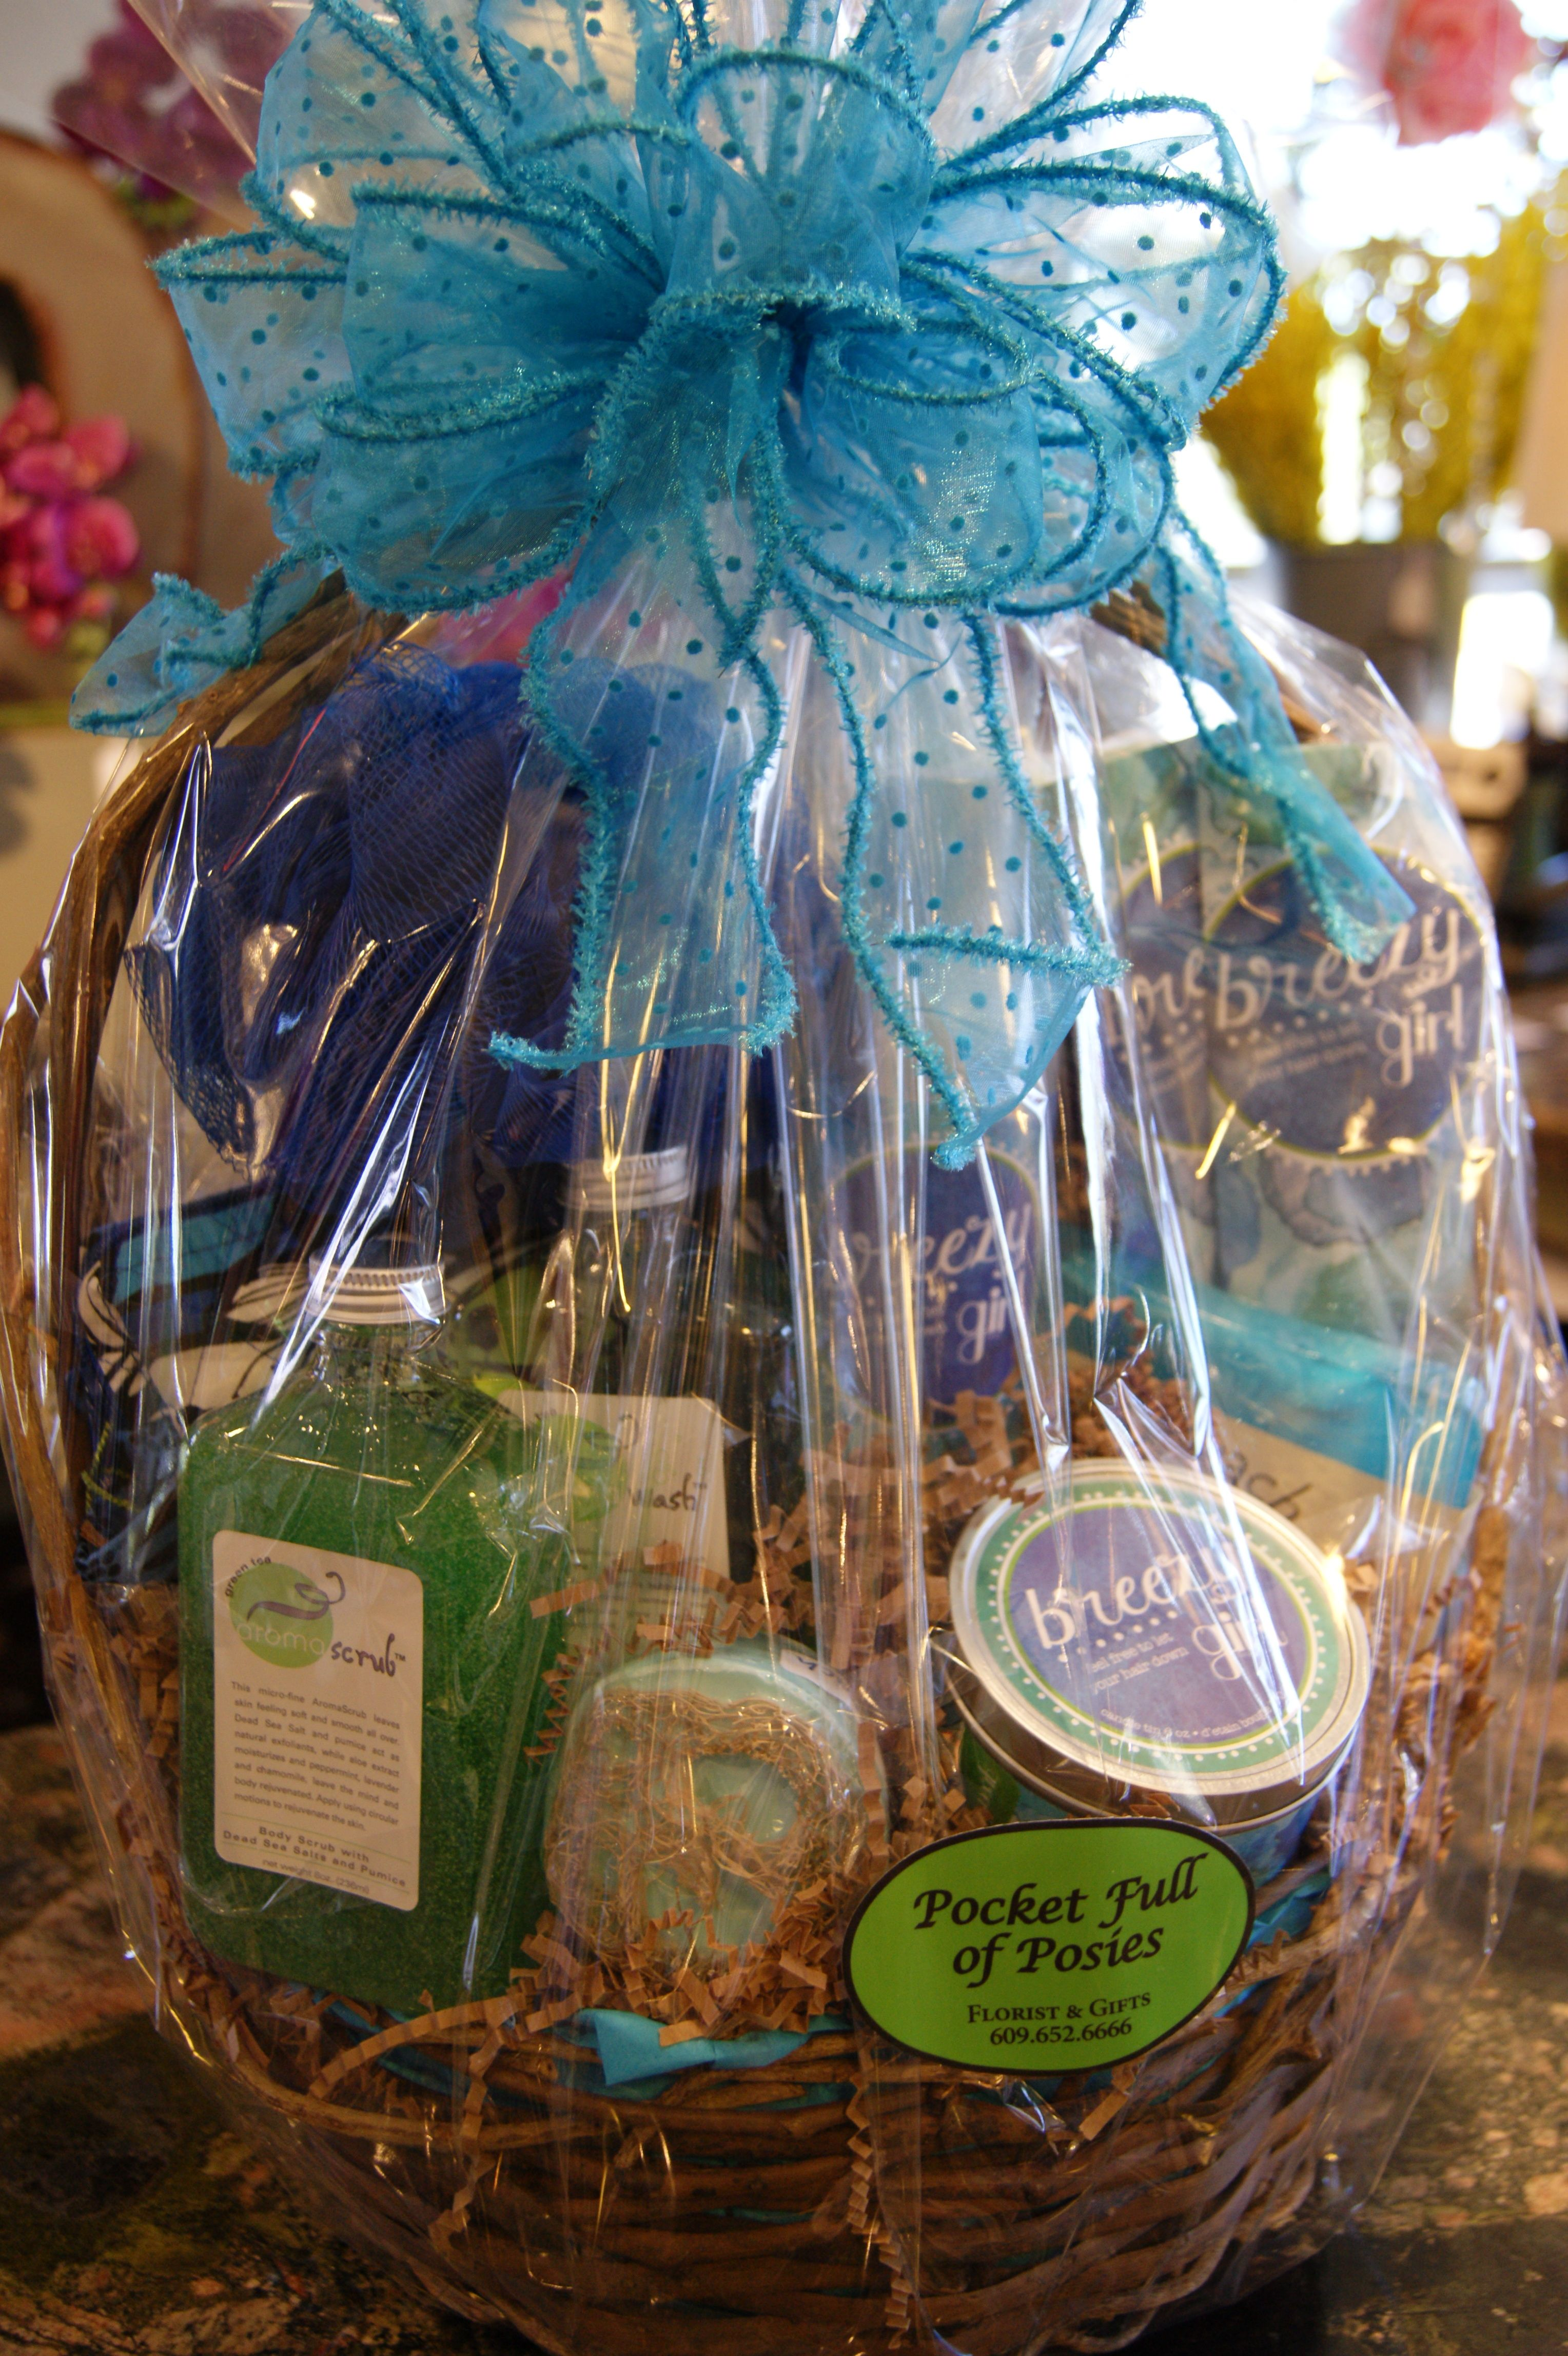 Custom spa baskets available at Pocket Full of Posies Florist & Gifts (Galloway, New Jersey 08205). Pricing starting at $50.00. Vera Bradley, Greenleaf Products, Aroma Scrubs & Wash, & Loova Soaps all available!!! CALL TODAY! 6096526666